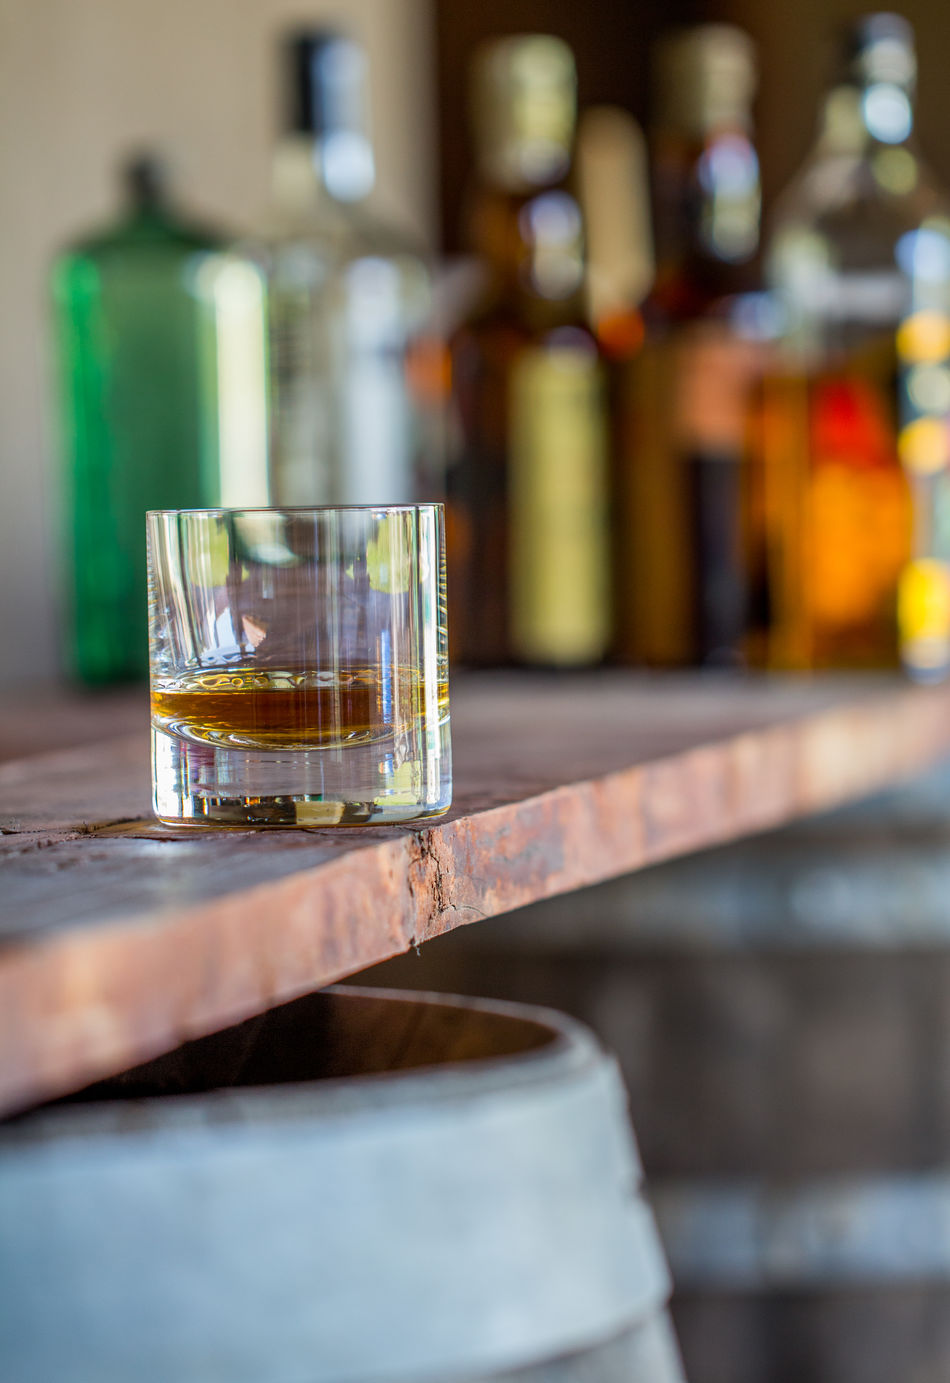 Food And Drink Drinking Glass Food And Drink Industry Drink Close-up No People Alcohol Indoors  Whiskey Bottles Bar Table Wood Barrels Status GLAMOR Golden